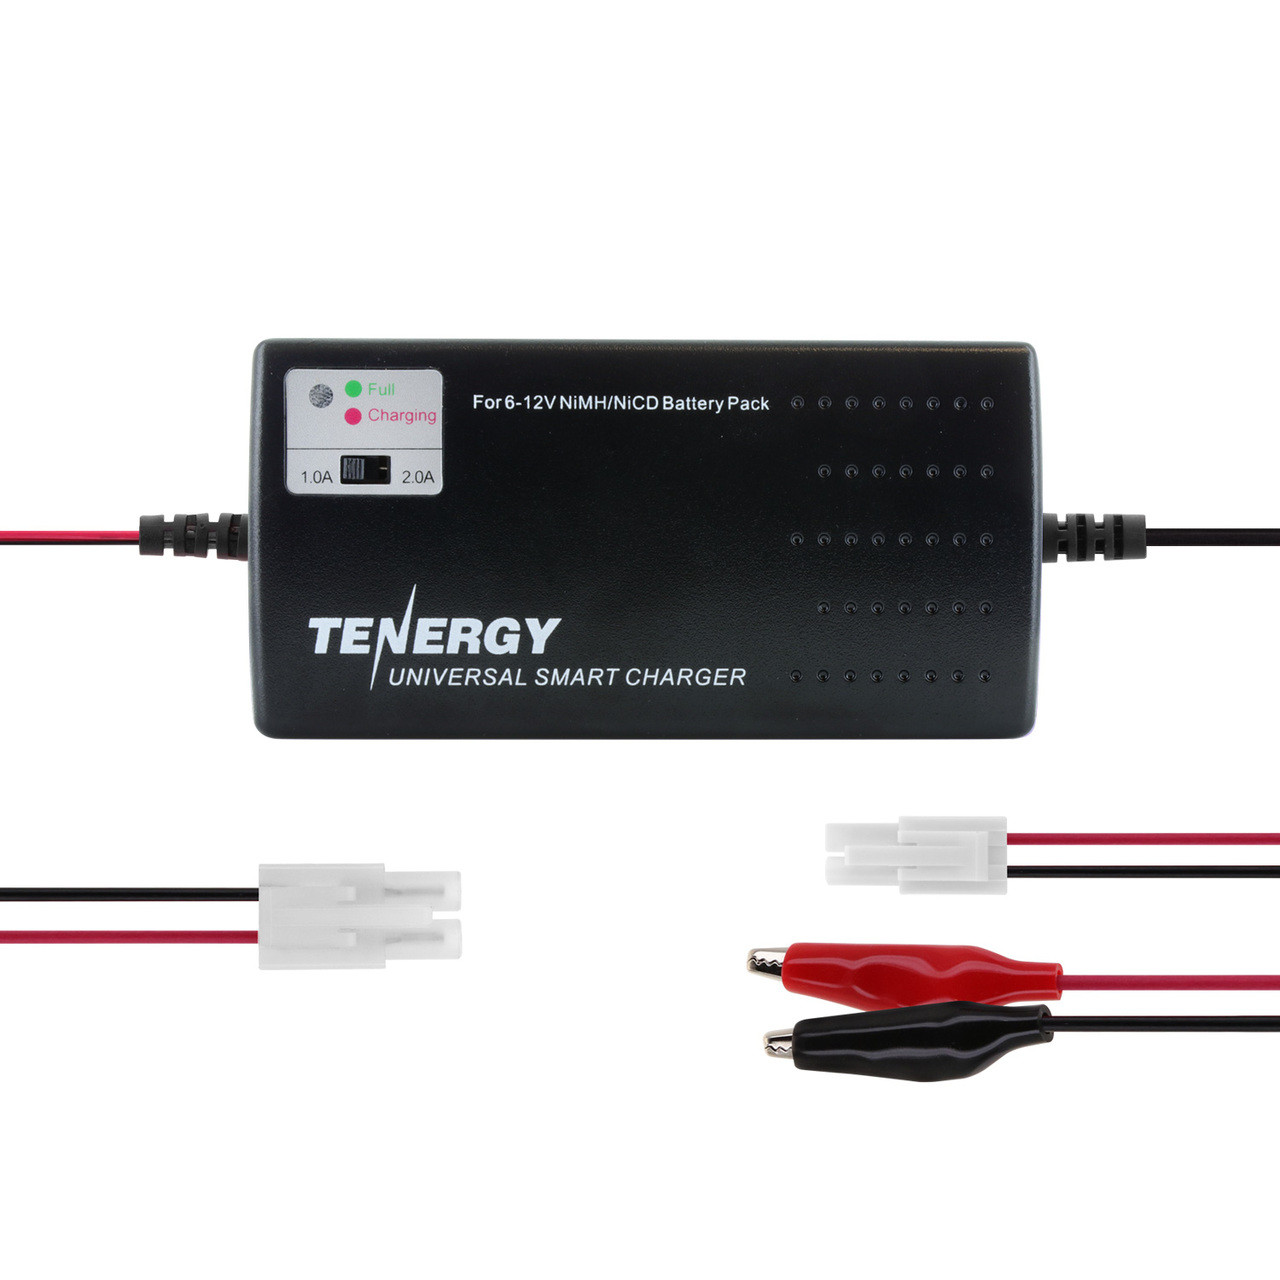 Tenergy Smart Universal Charger for NiMH/NiCd Battery Packs: 6V - 12V (UL)